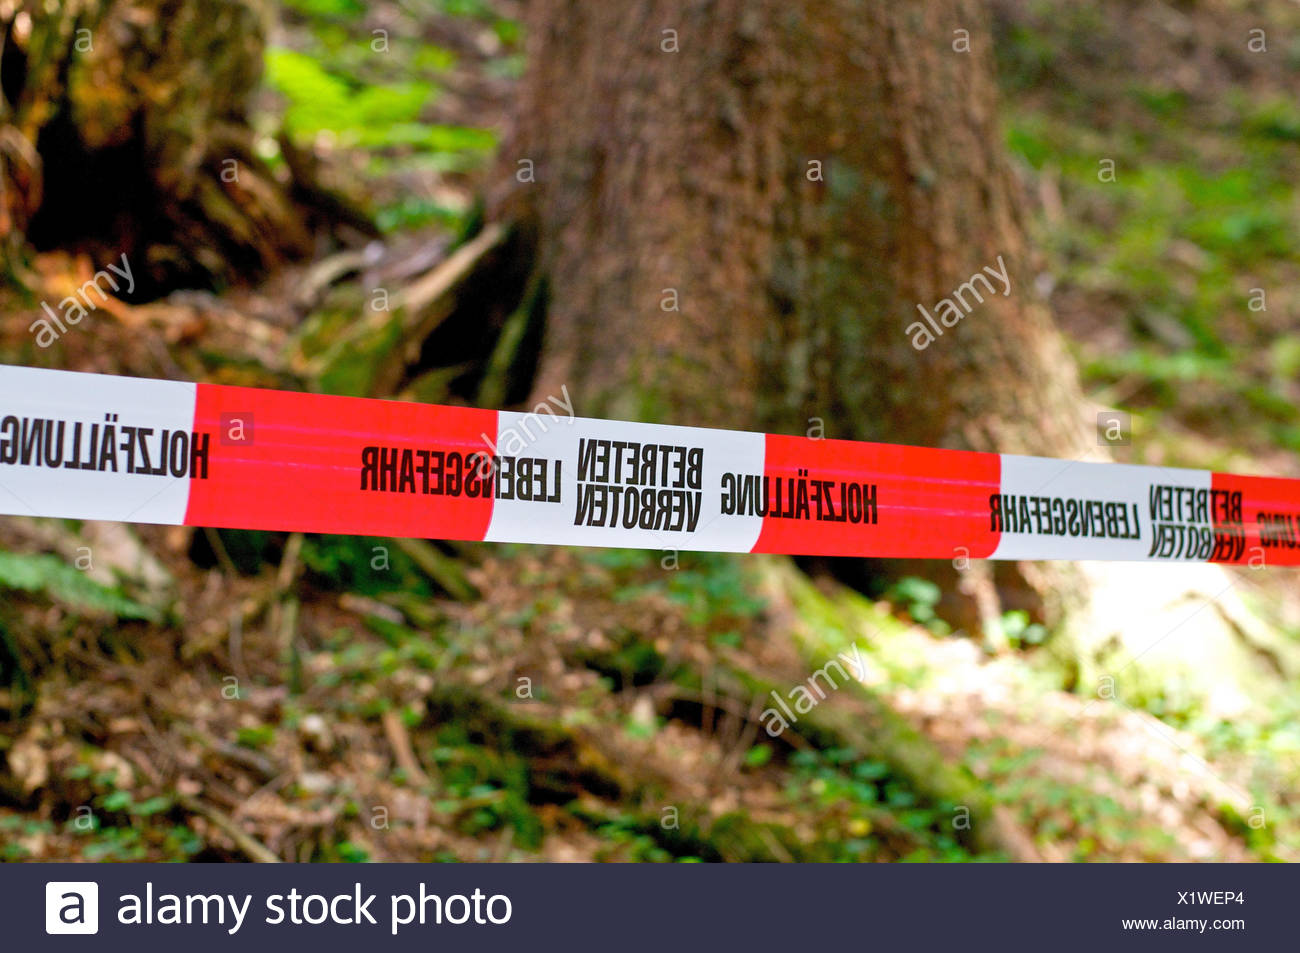 Blocking selection with Wooden precipitation, - Stock Image